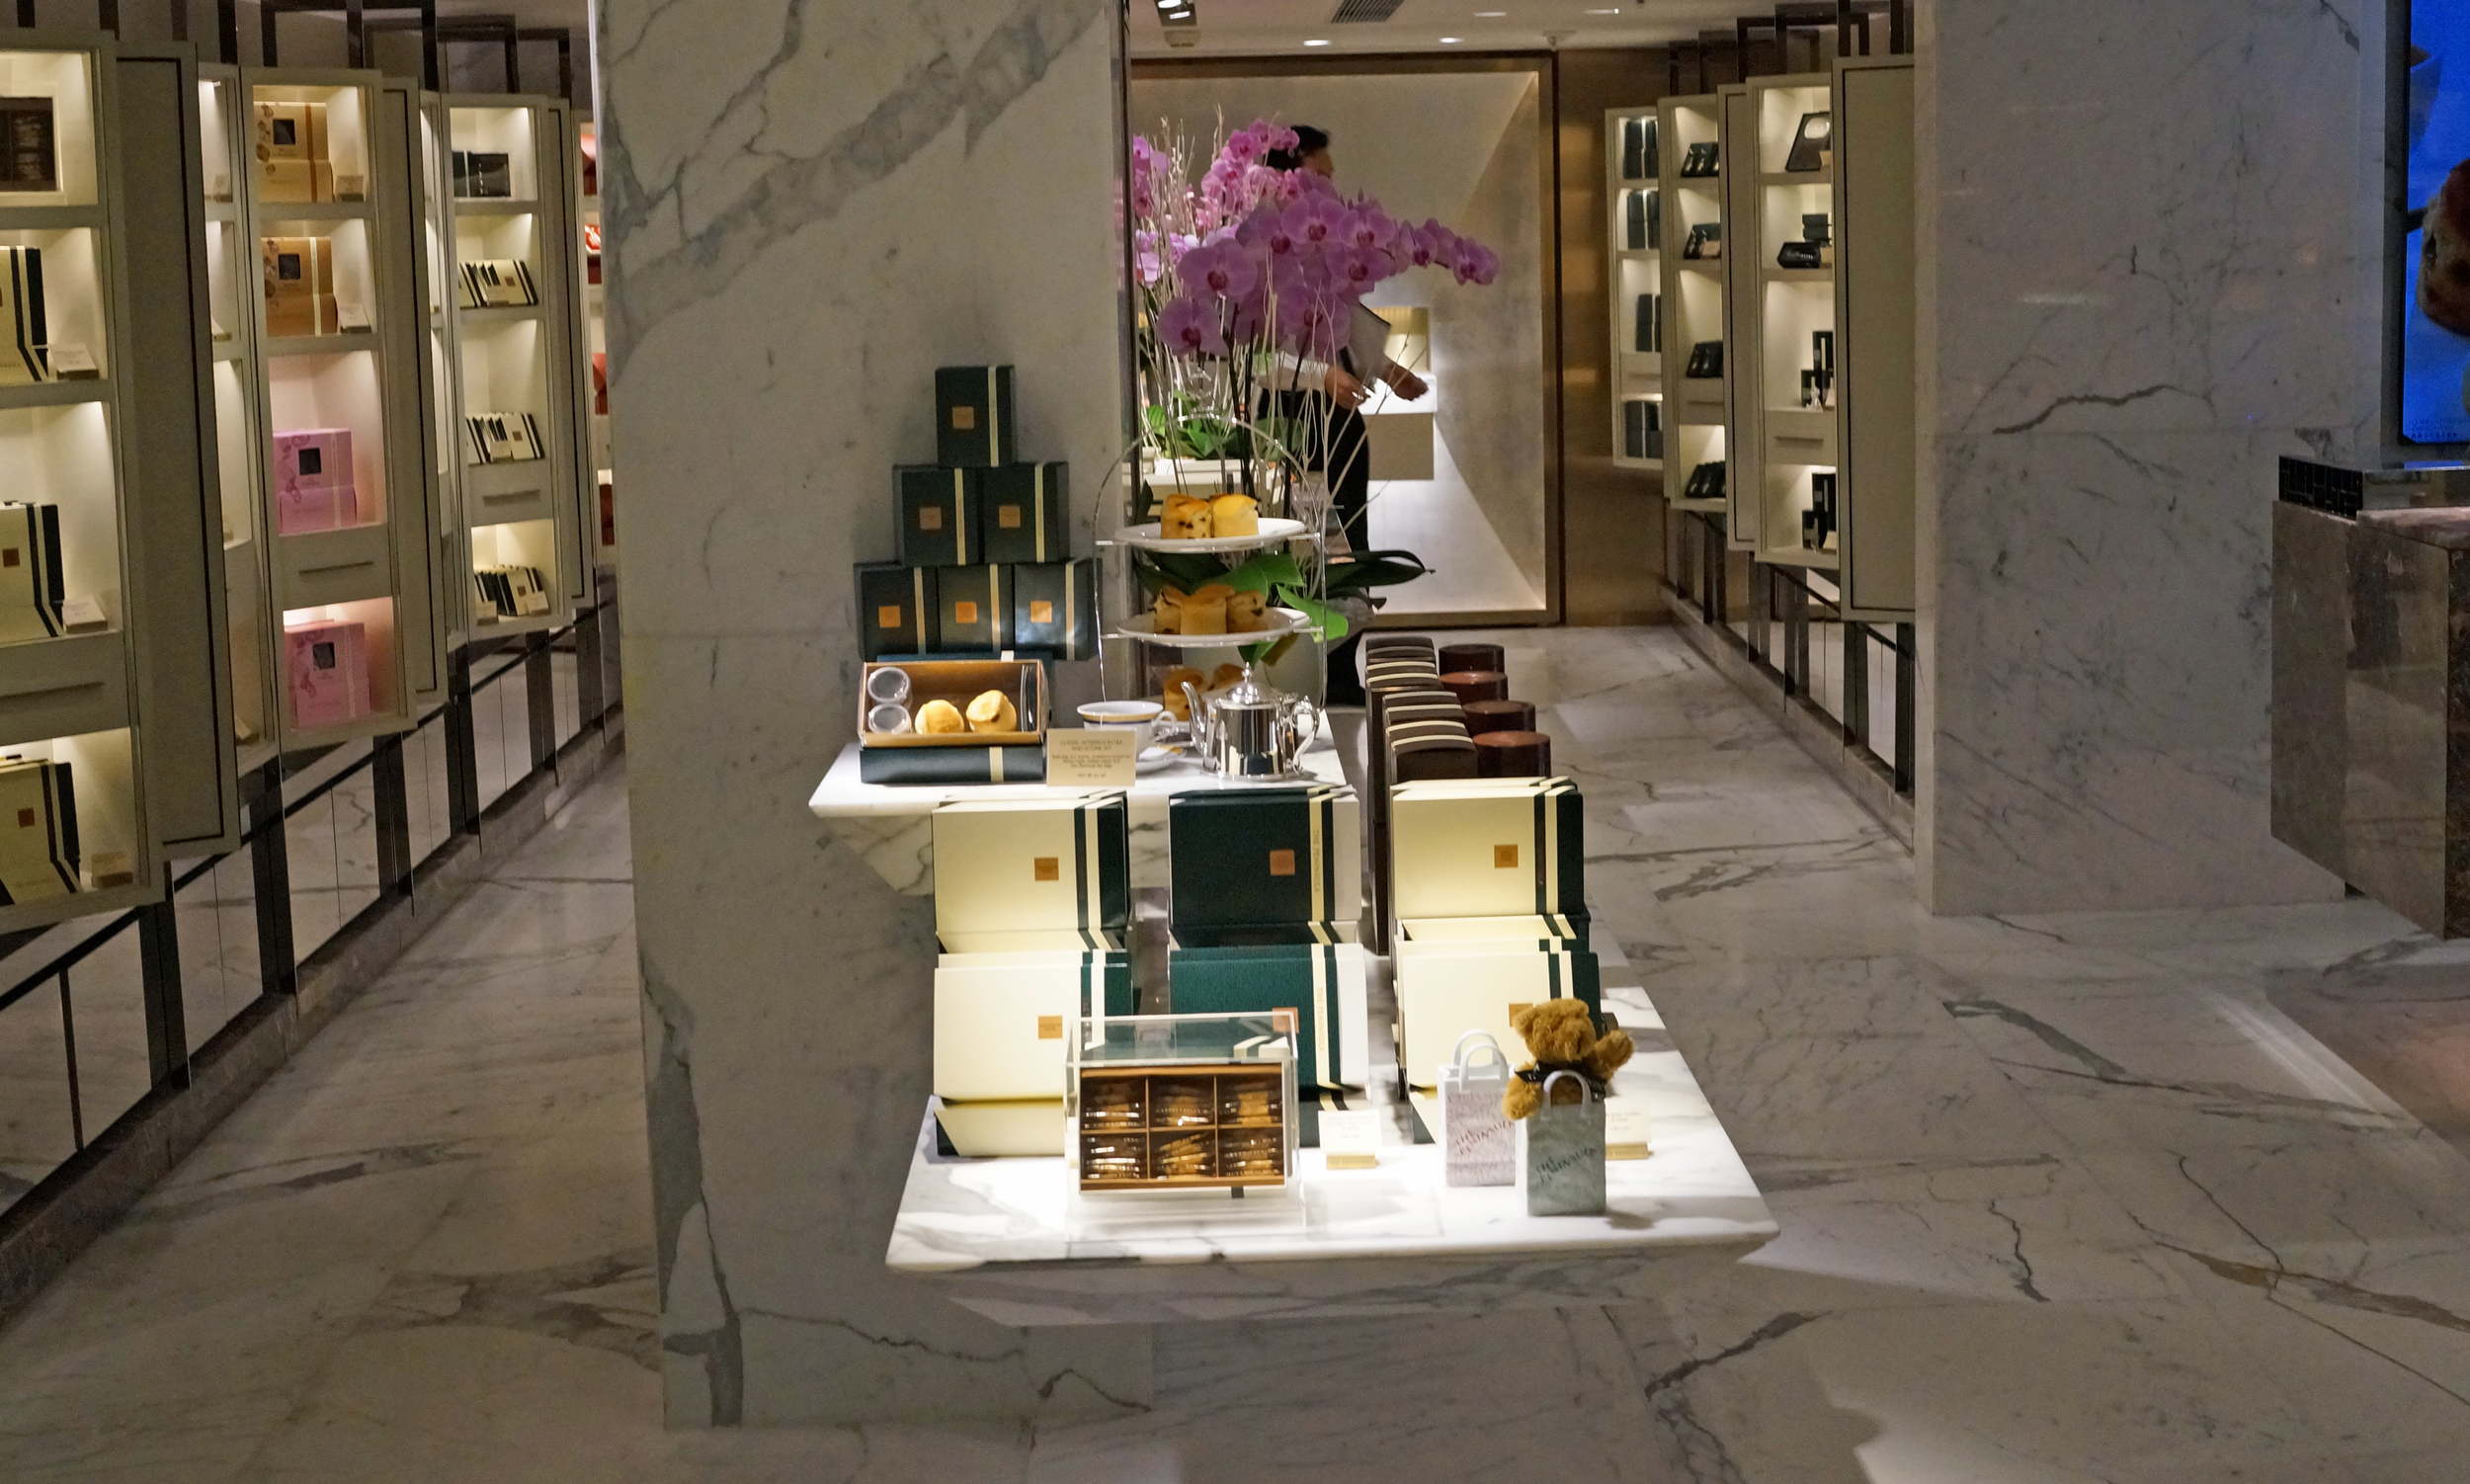 If you go into the basement arcade of the fabulous Peninsula Hotel you will come across the Hotel's boutique where you can buy all manner of Peninsula branded products, worth a visit! -